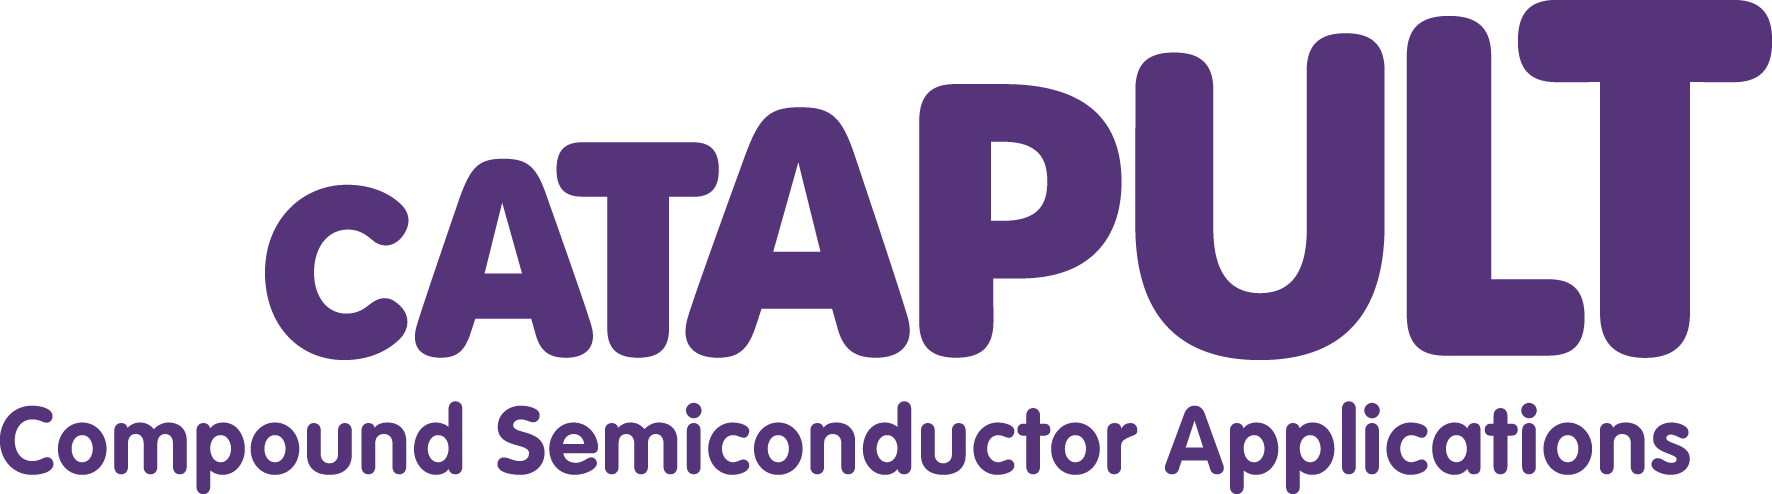 Catapult Compound Semiconductor